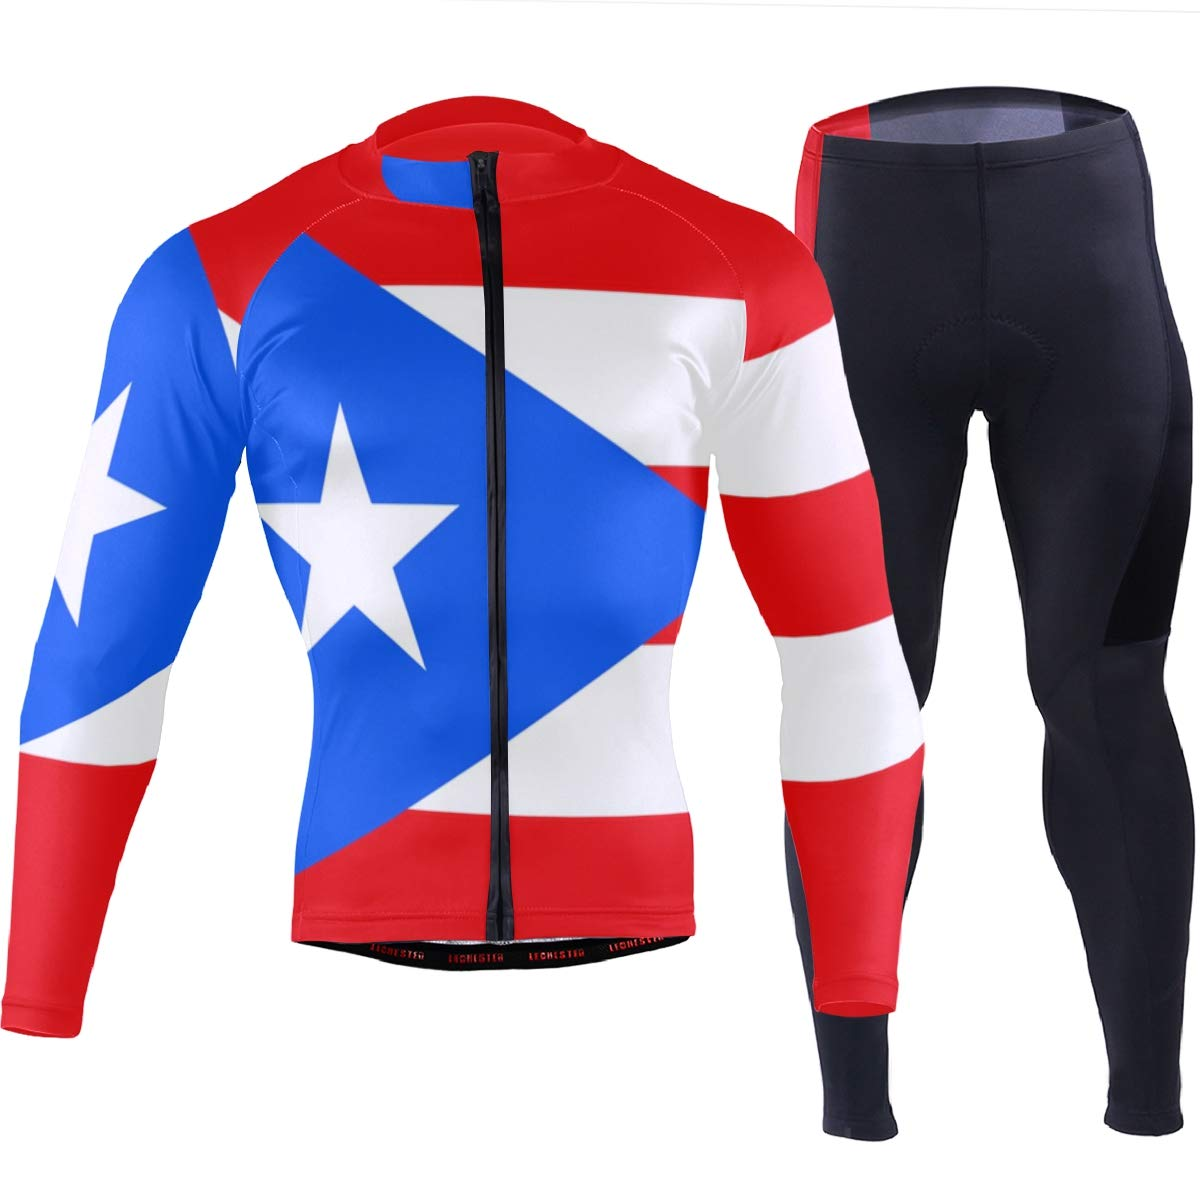 CHINEIN Men's Cycling Jersey Long Sleeve with 3 Rear Pockets Suit Puerto Rico Flag